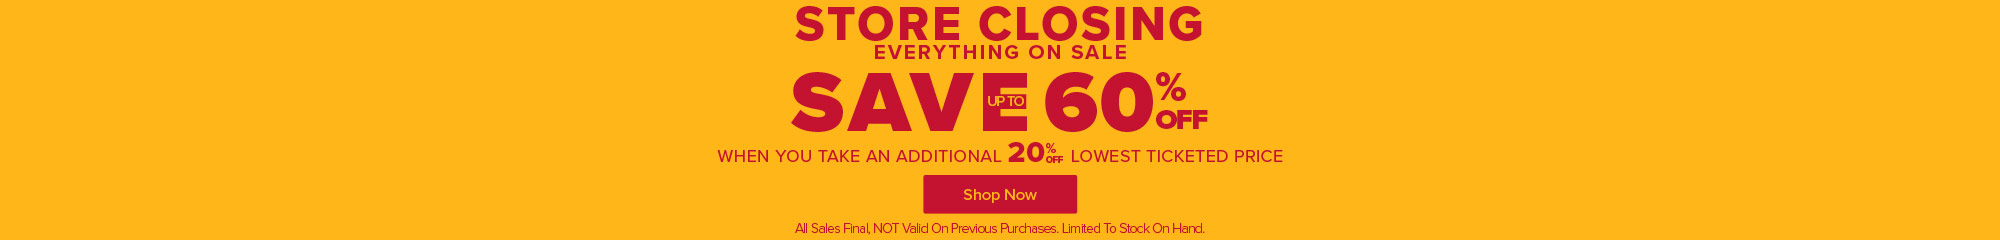 Store Closing. Save up to 60% when you take an additional 20% off. Shop Now.